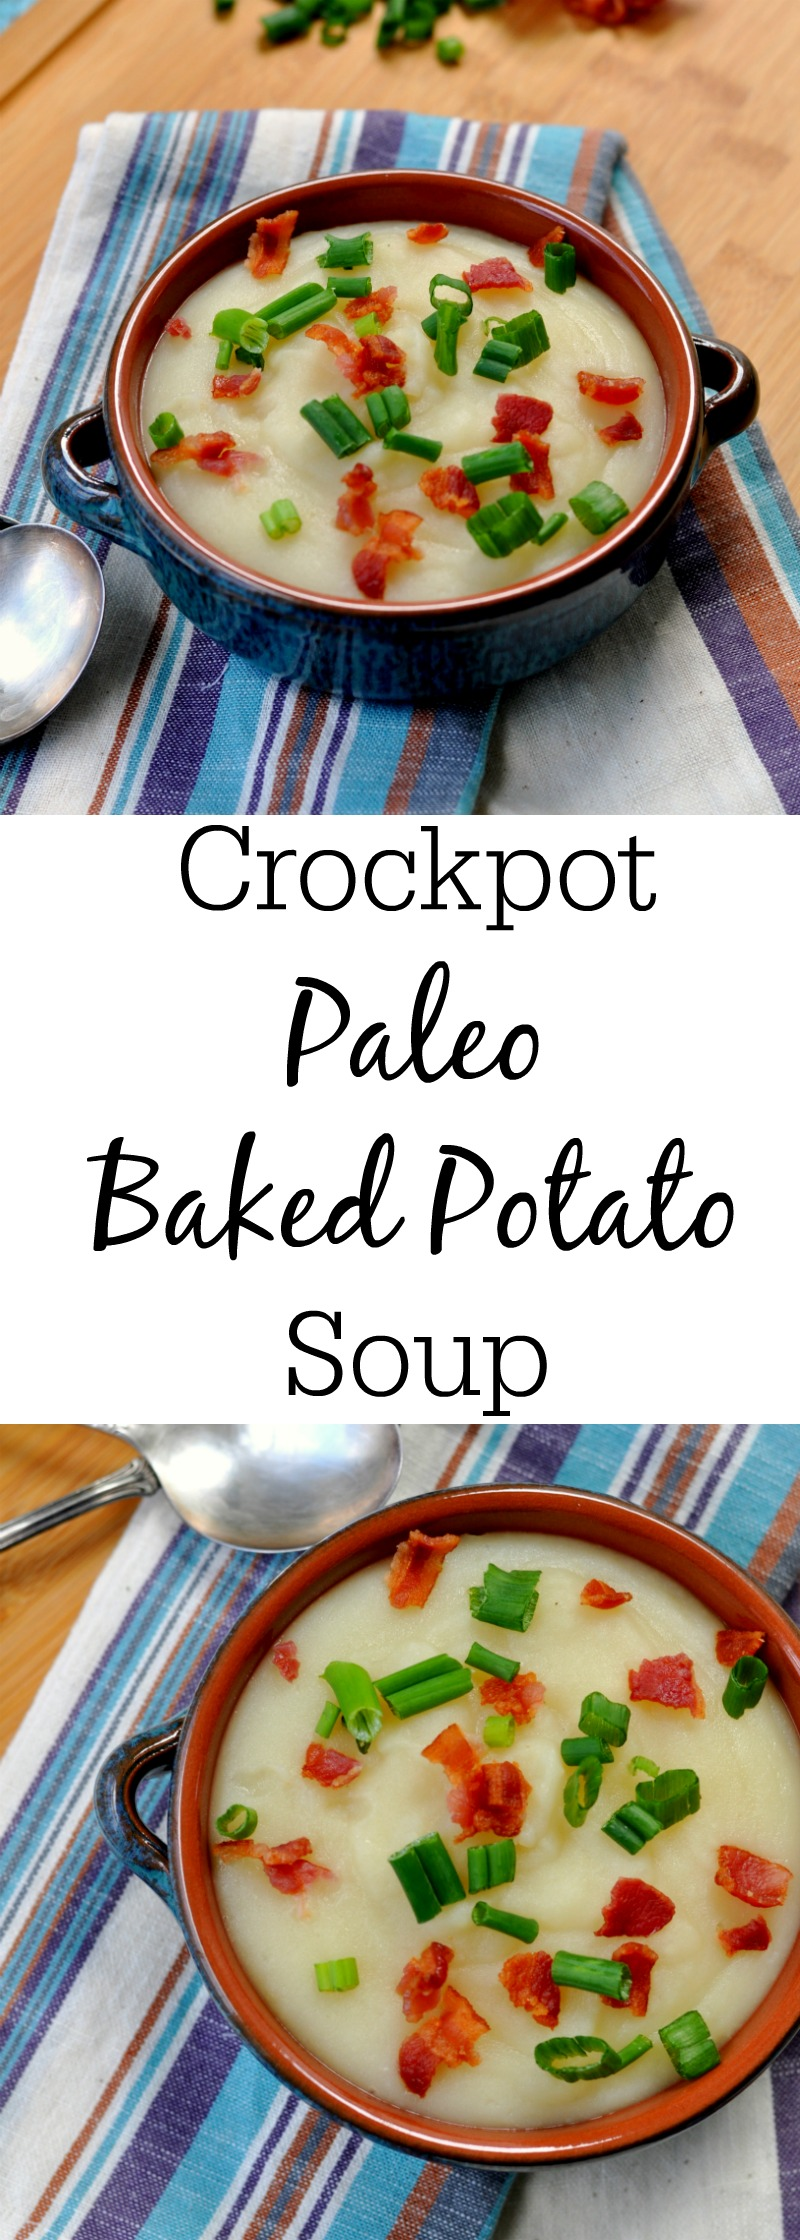 Crockpot Paleo Baked Potato Soup